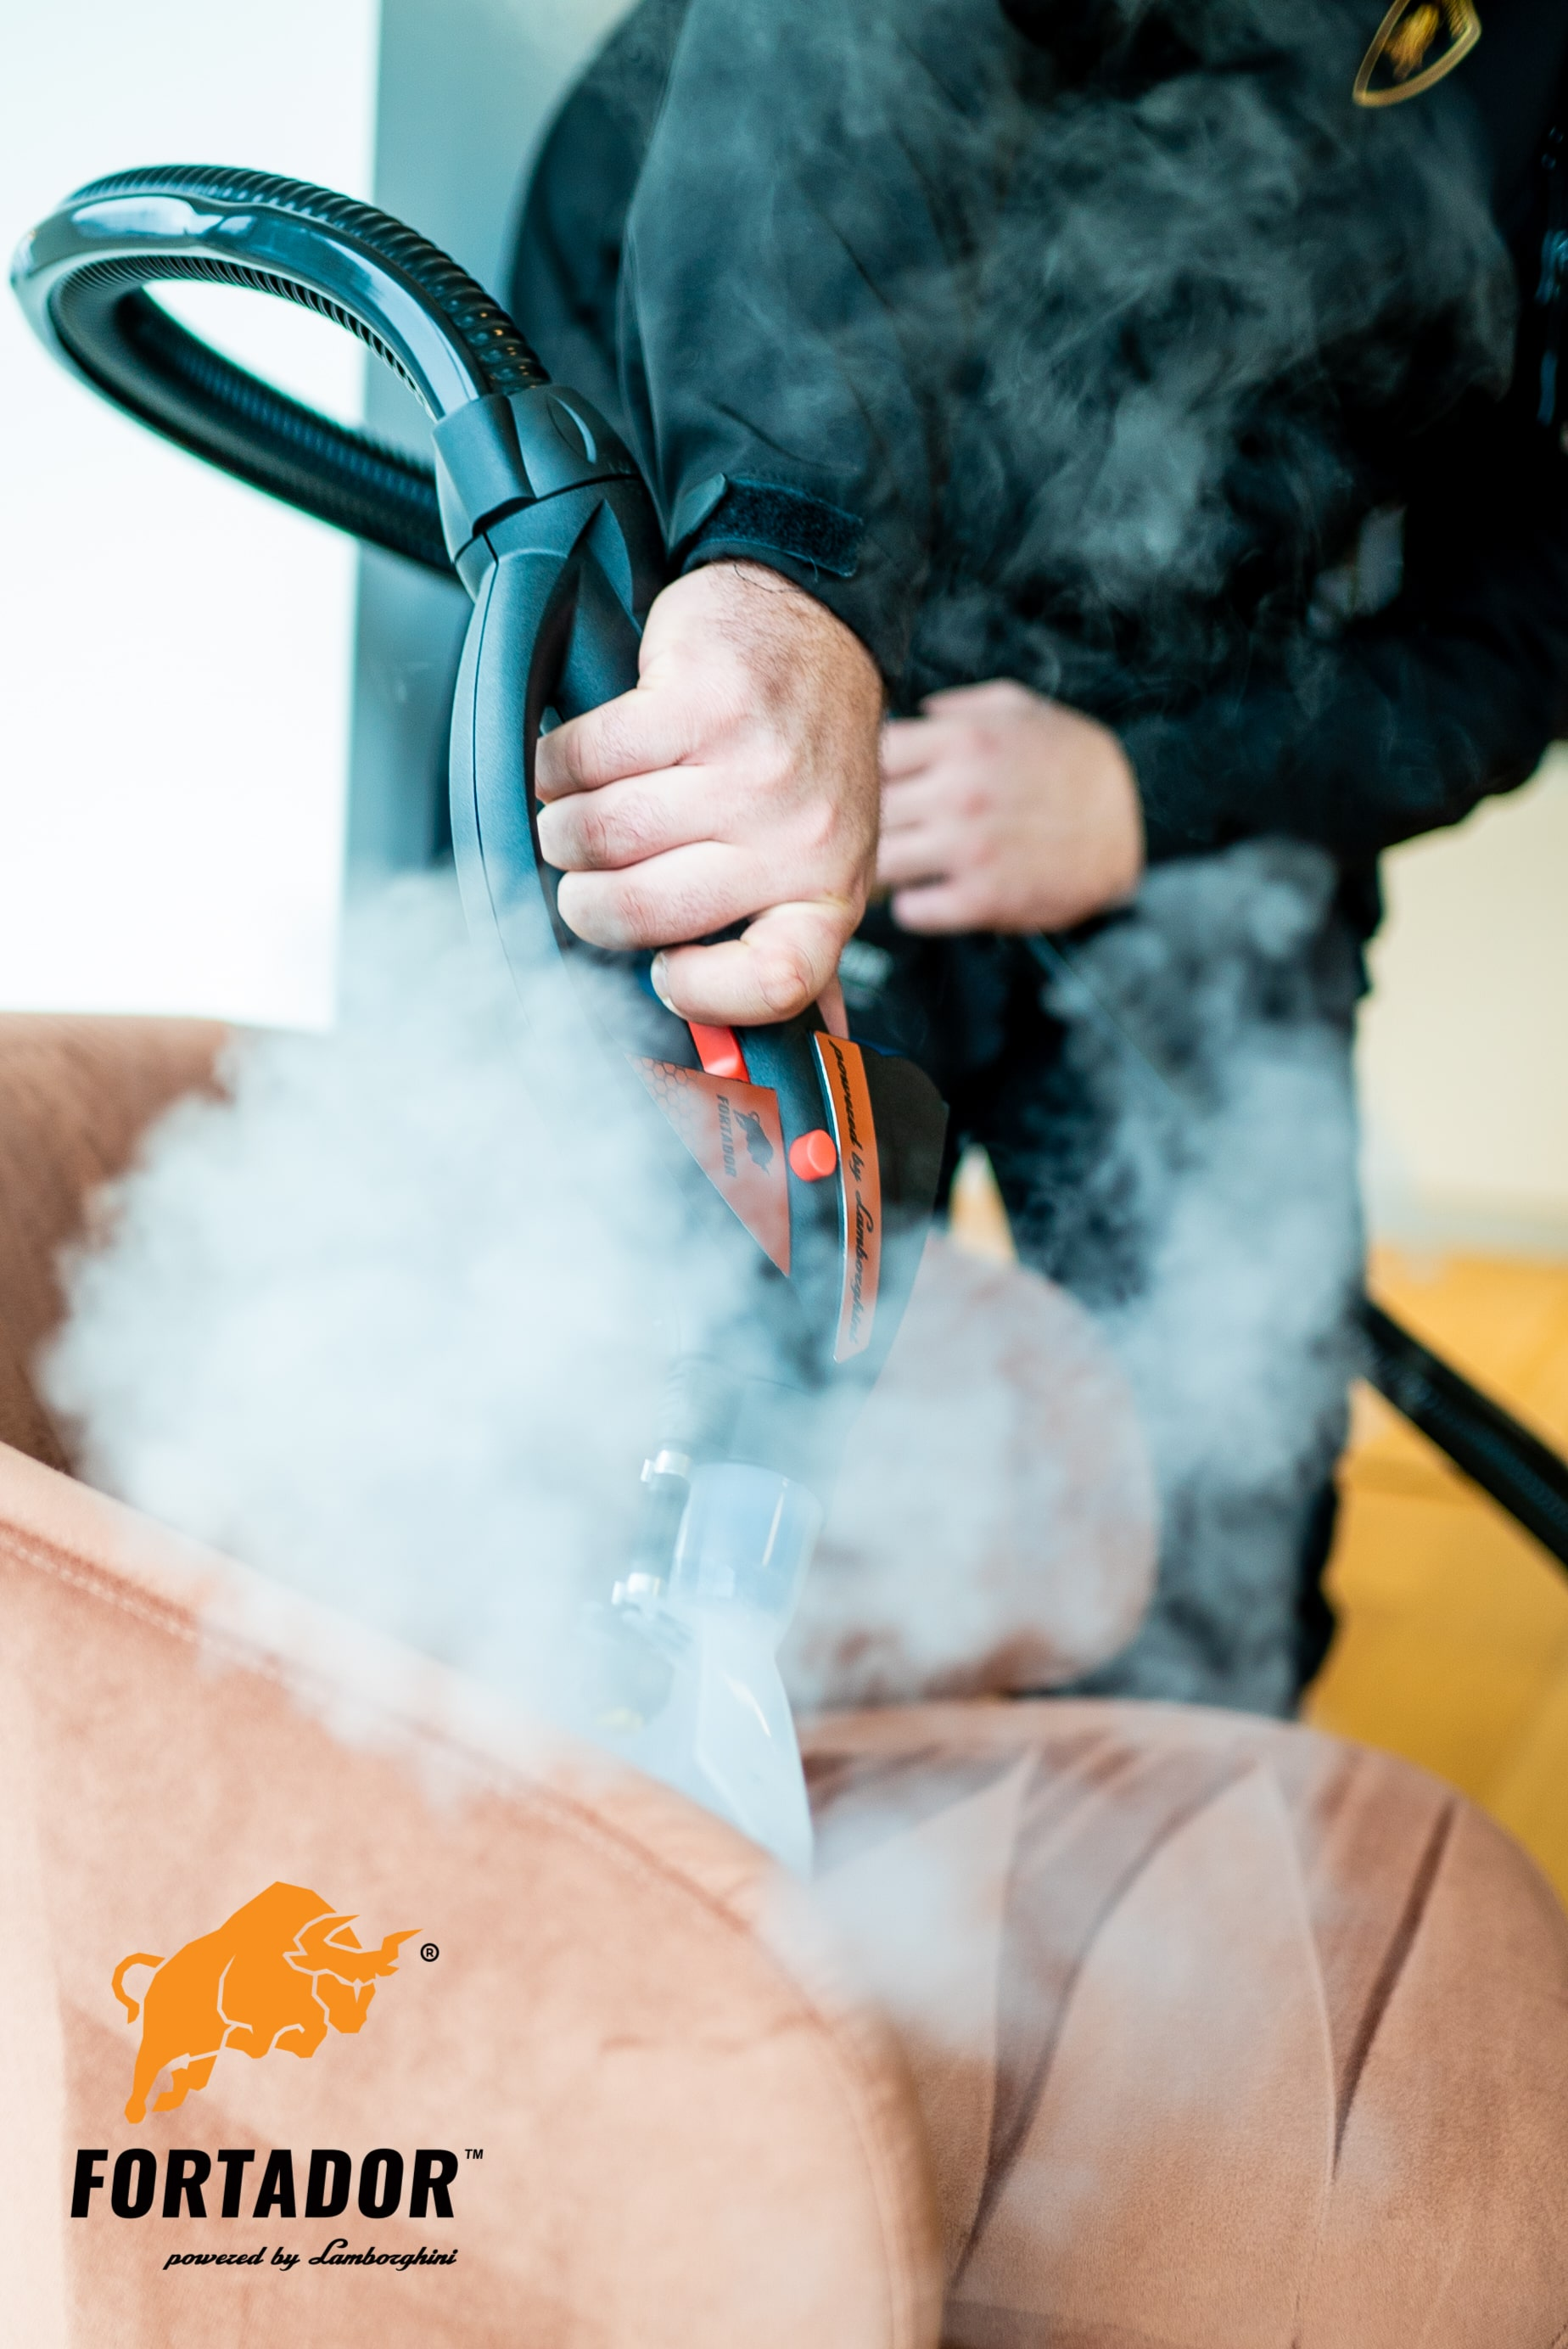 steaming of furniture for cleaning